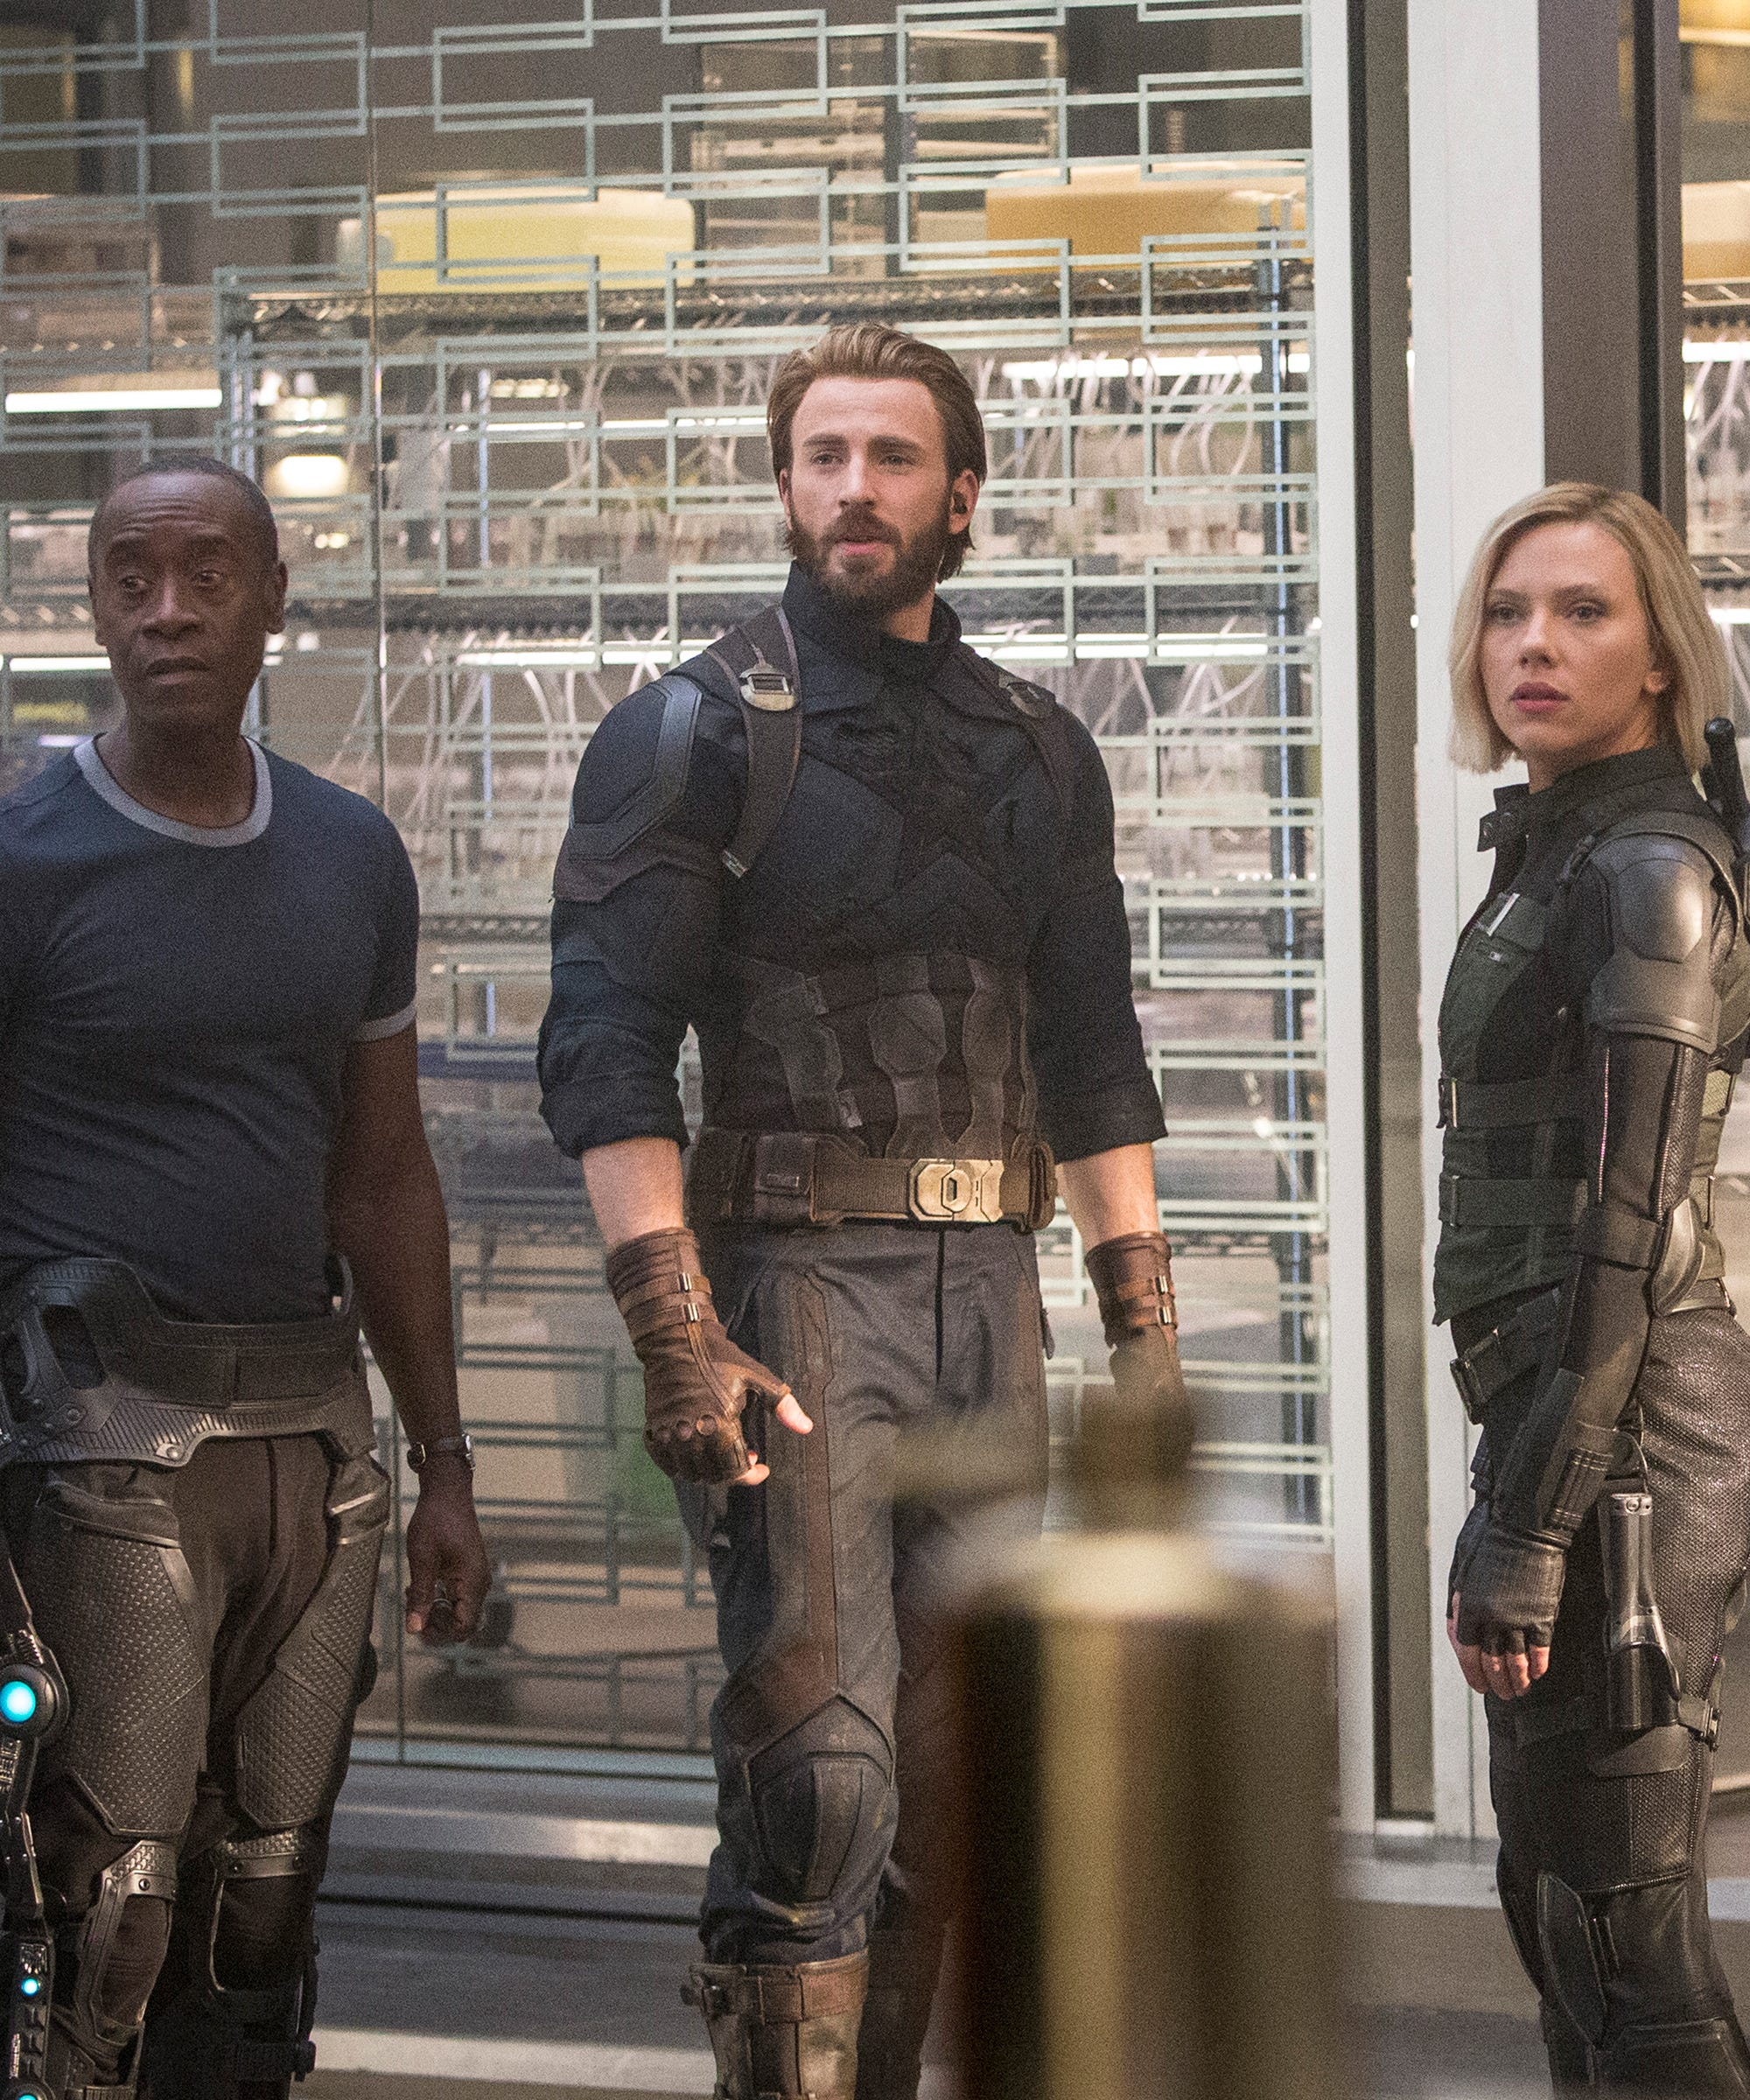 Marvel Movies You Have To Watch Before Avengers Endgame